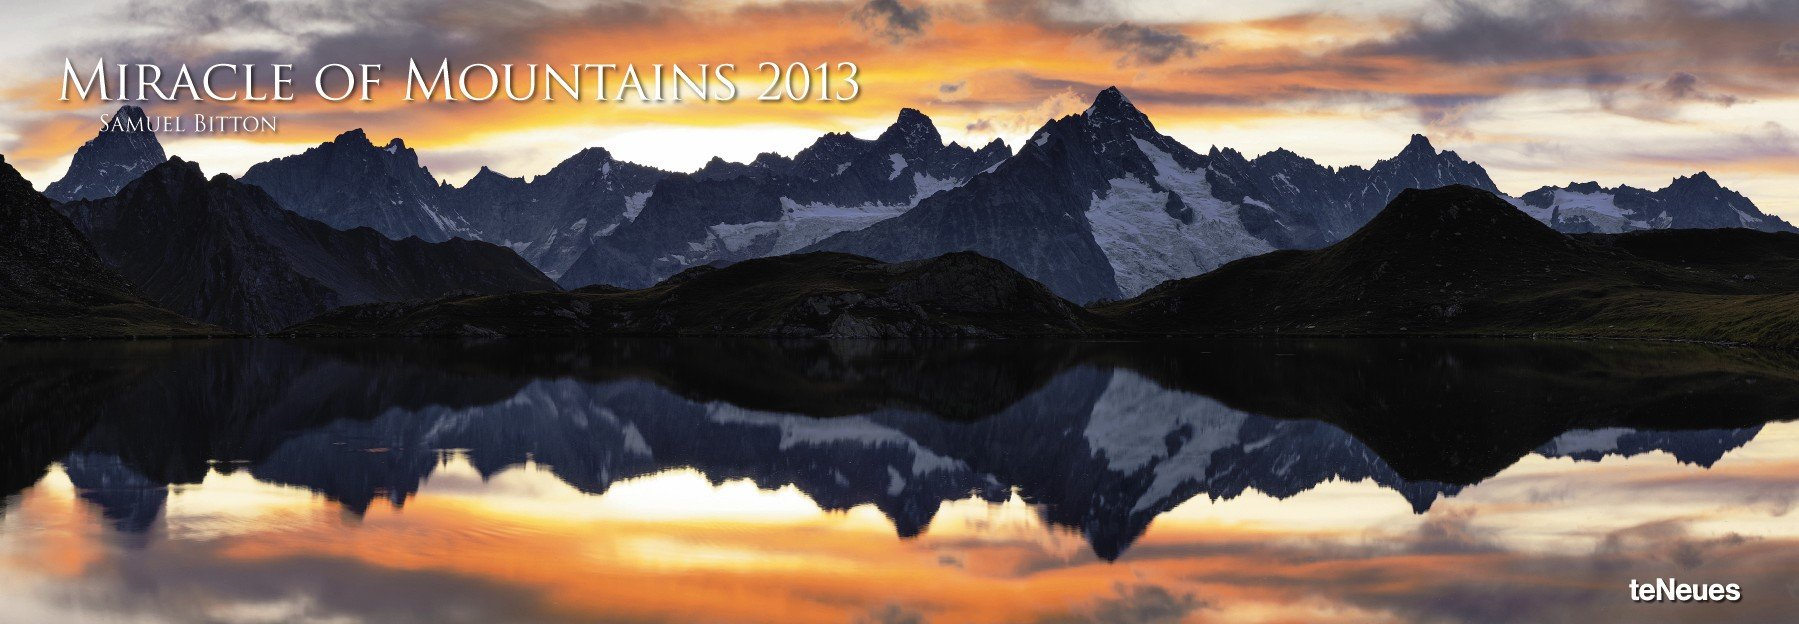 Miracle of Mountains 2013